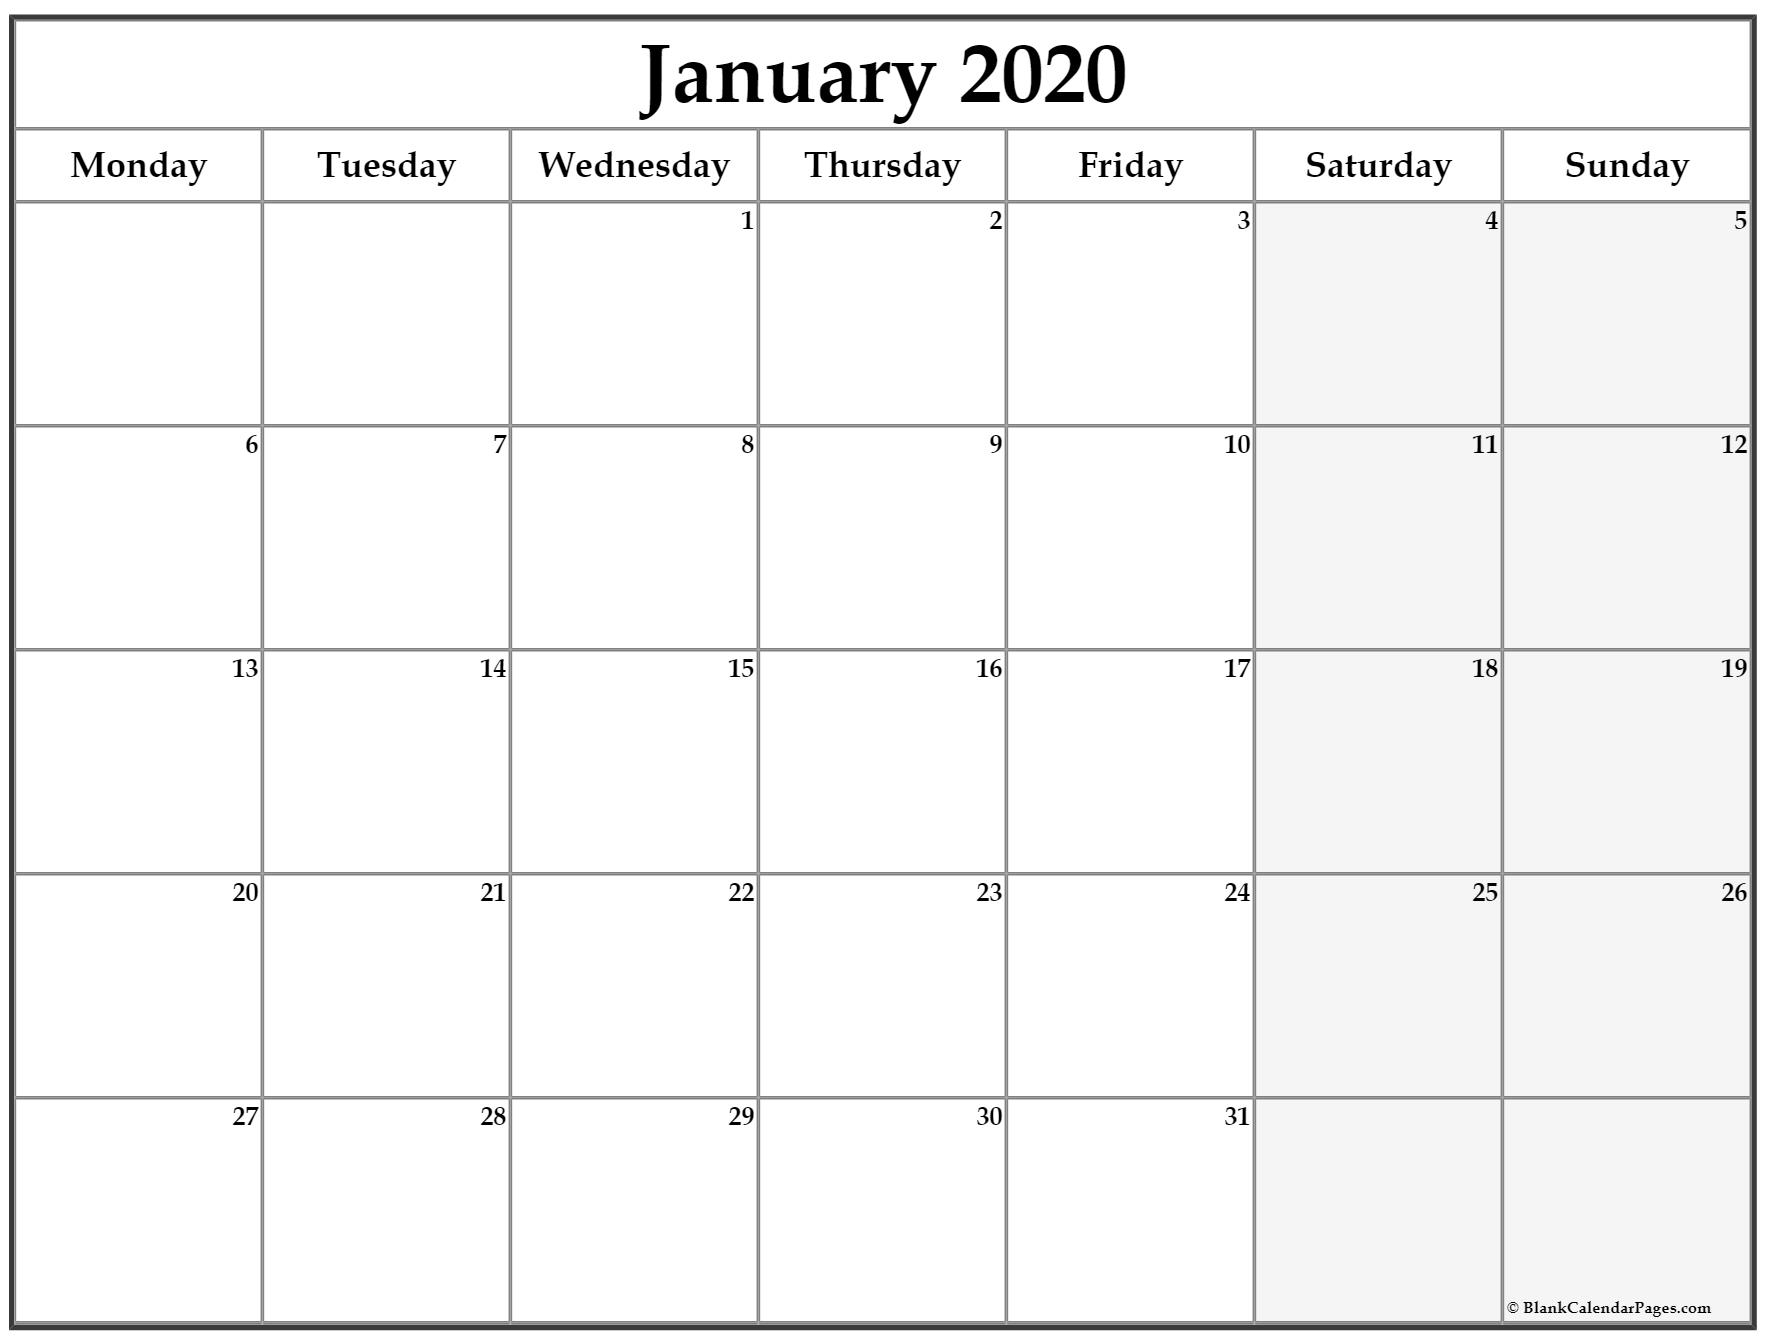 January 2020 Monday Calendar | Monday To Sunday intended for Blank Calendar Starting With Monday